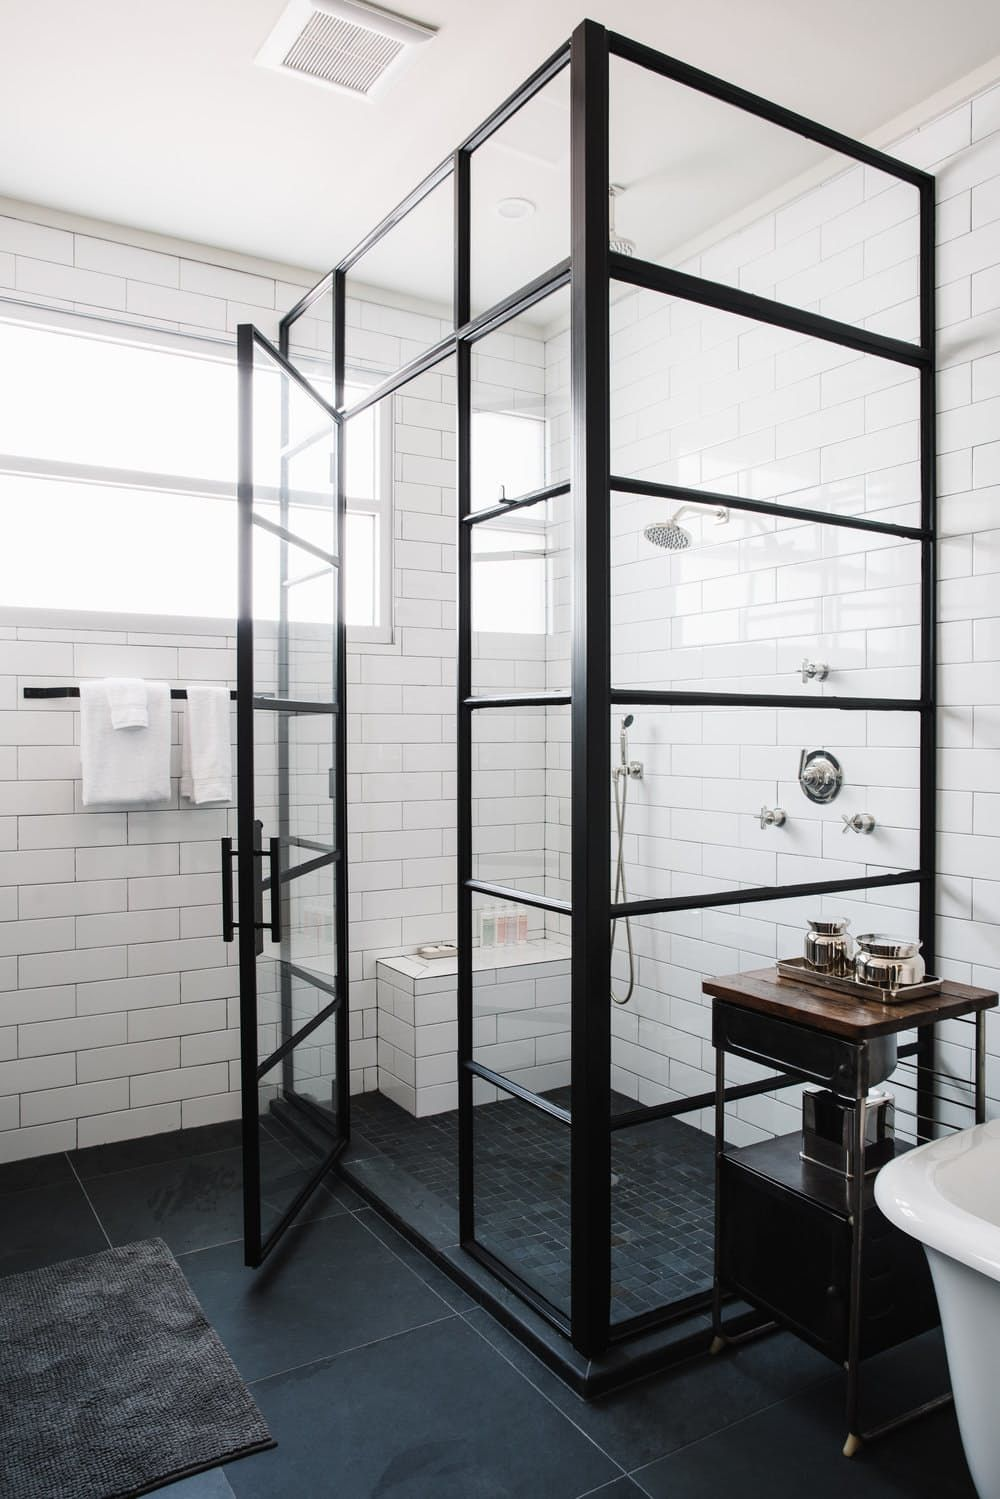 These Showers Are The New Big Thing In Bathrooms Bathroom